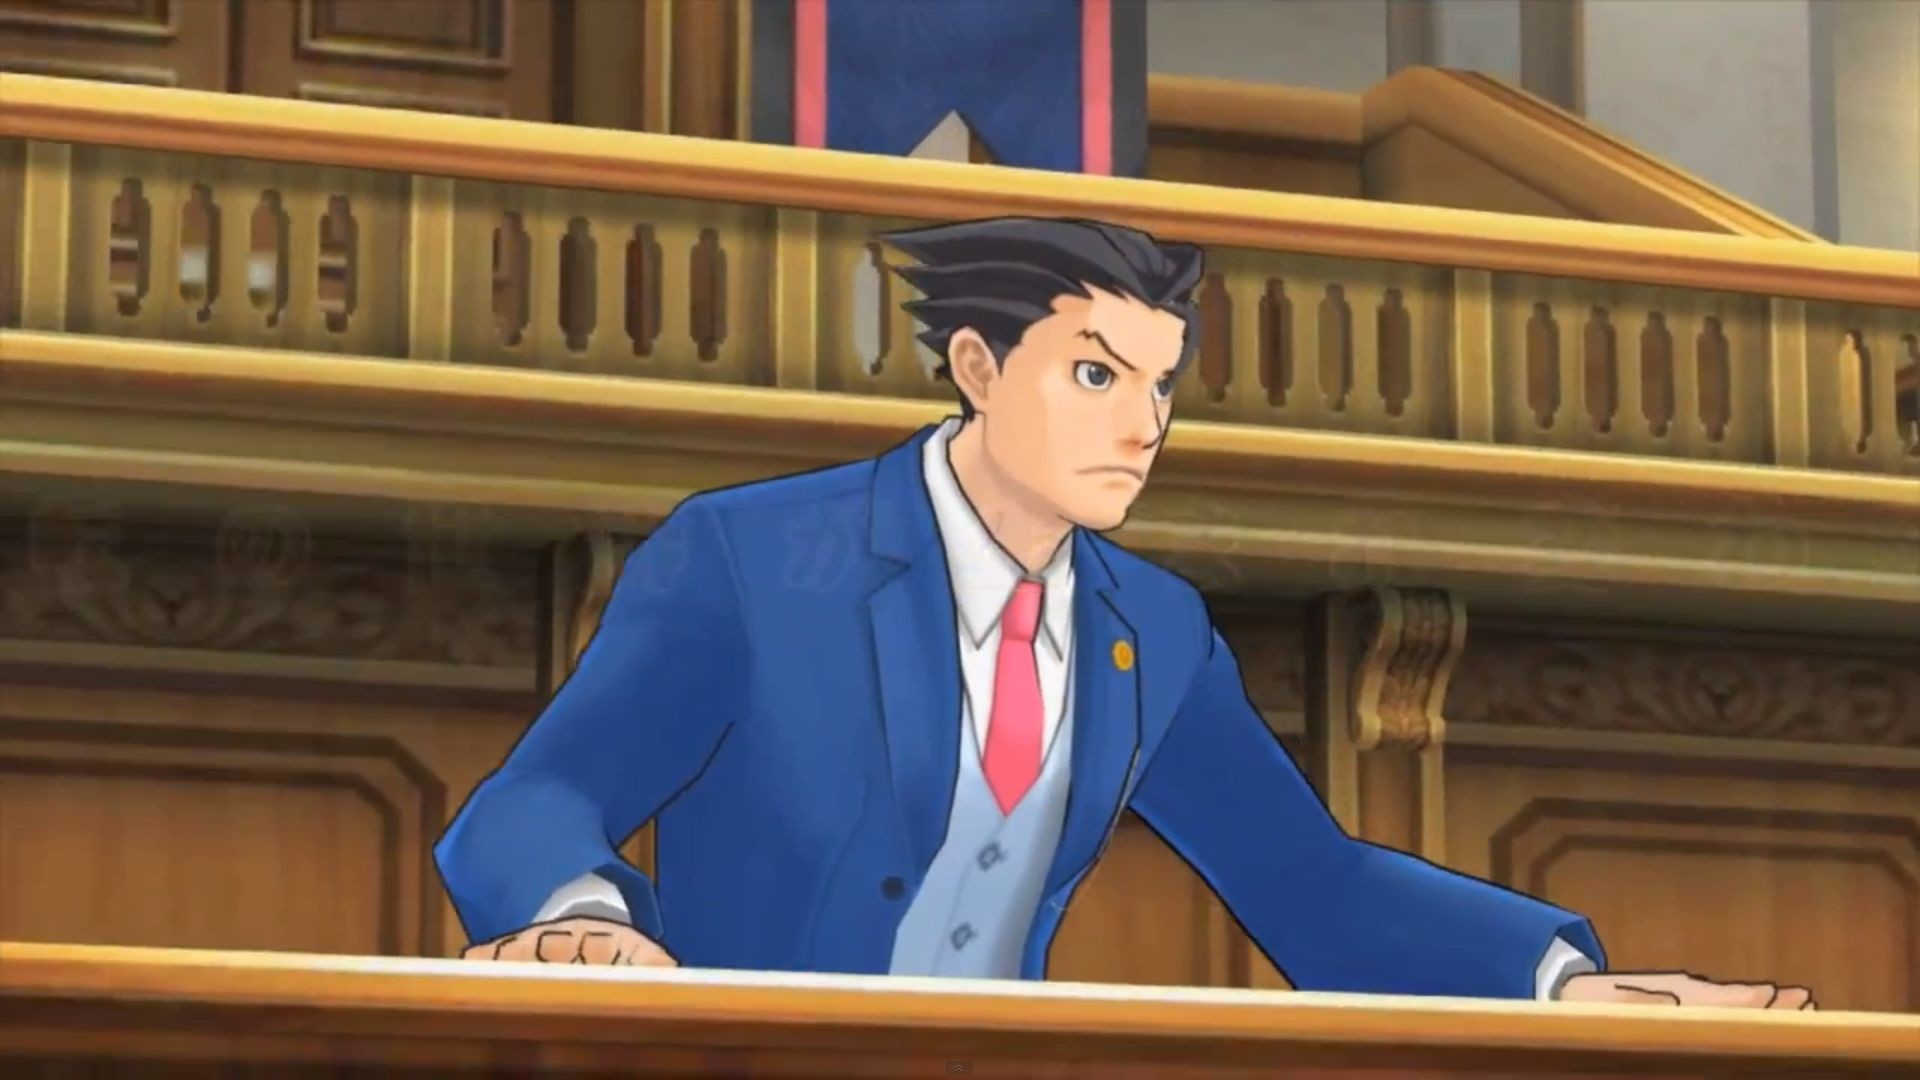 1920x1080 Remastered Phoenix Wright: Ace Attorney Trilogy Comparison Images - Pure  Nintendo